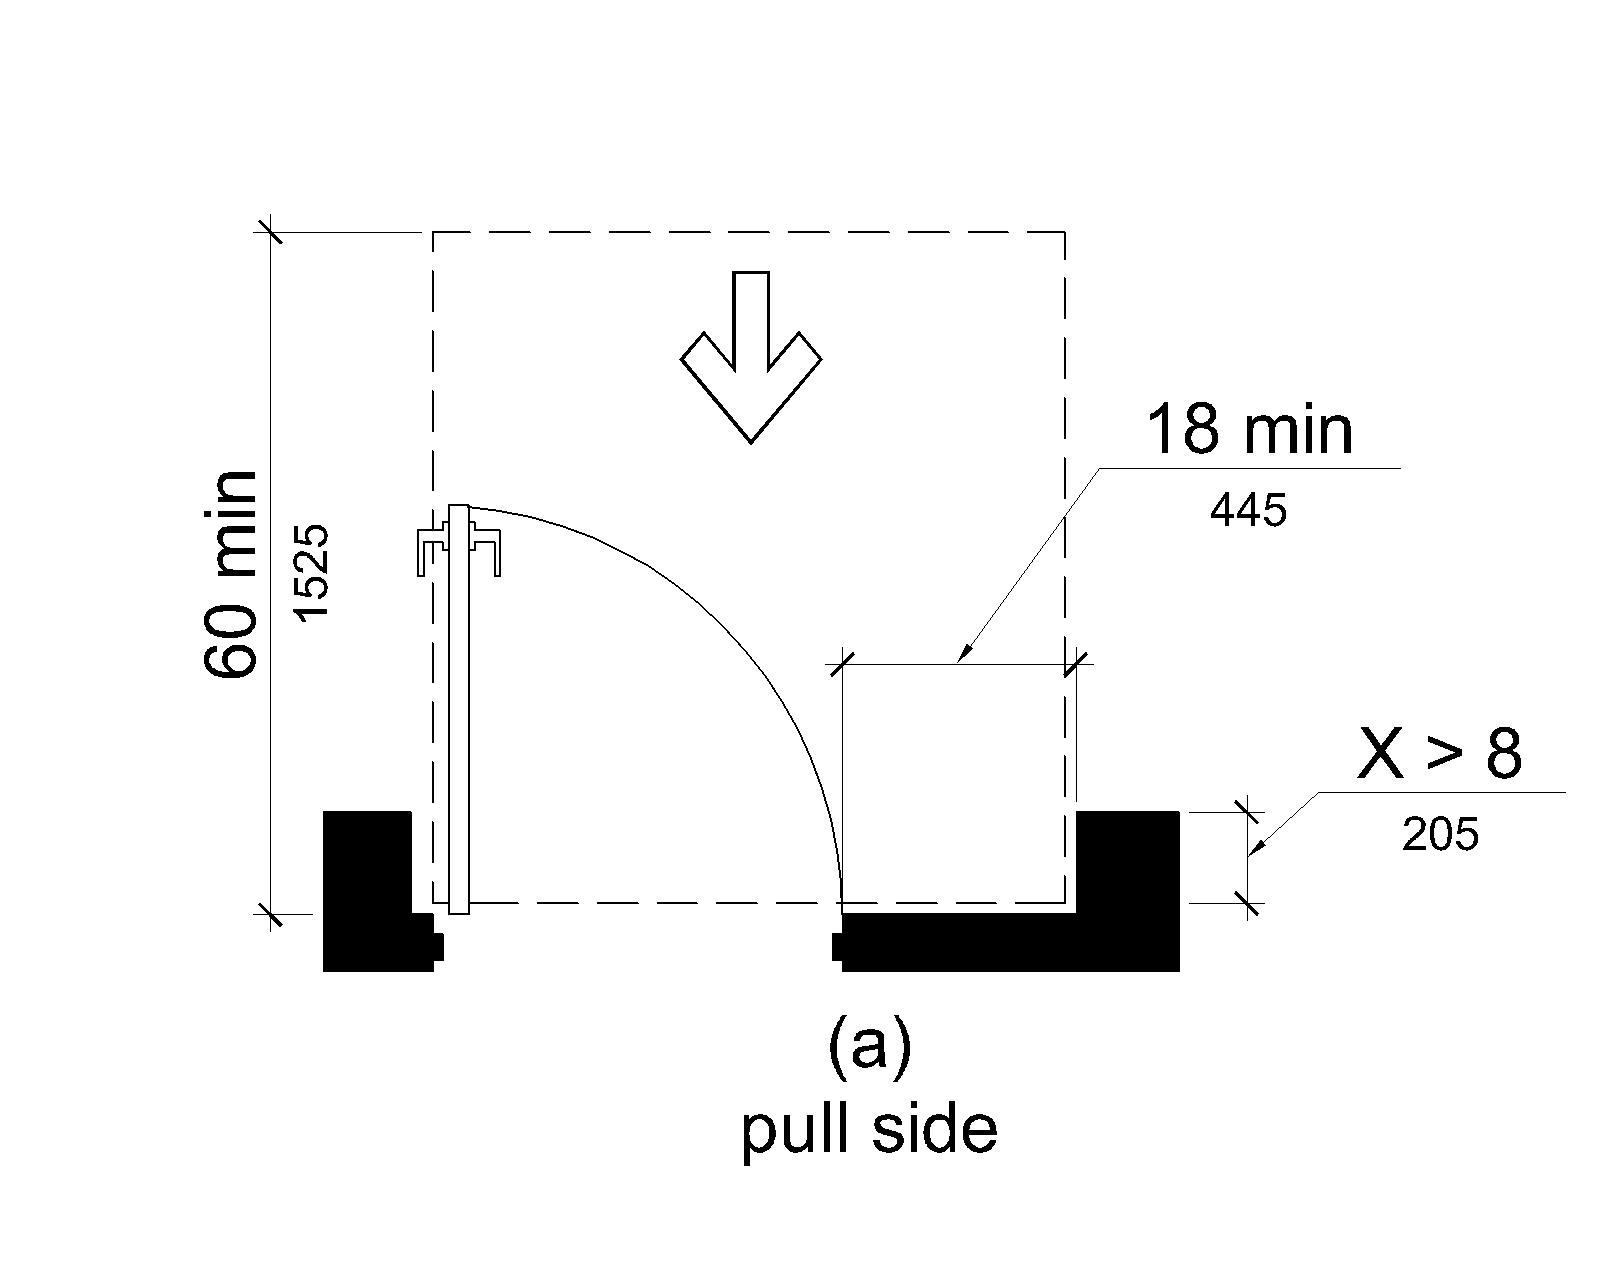 (a) Maneuvering space on the pull side extends 18 inches (455 mm) minimum beyond the latch side of the door and 60 inches (1525 mm) minimum perpendicular to the plane of the doorway.